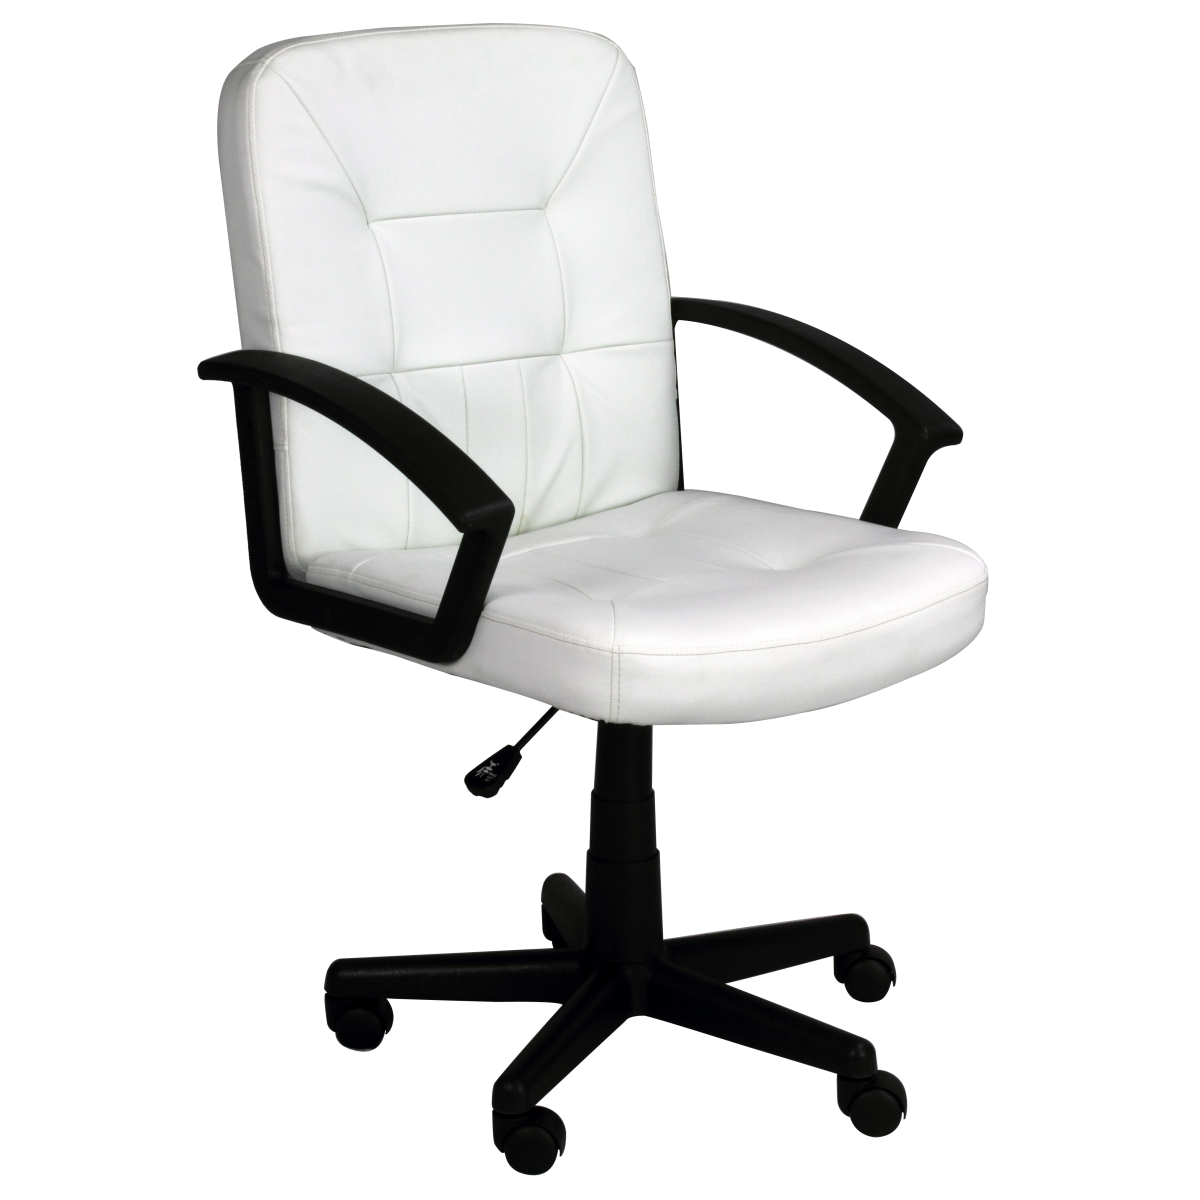 Clipart desk desk chair. Office png image